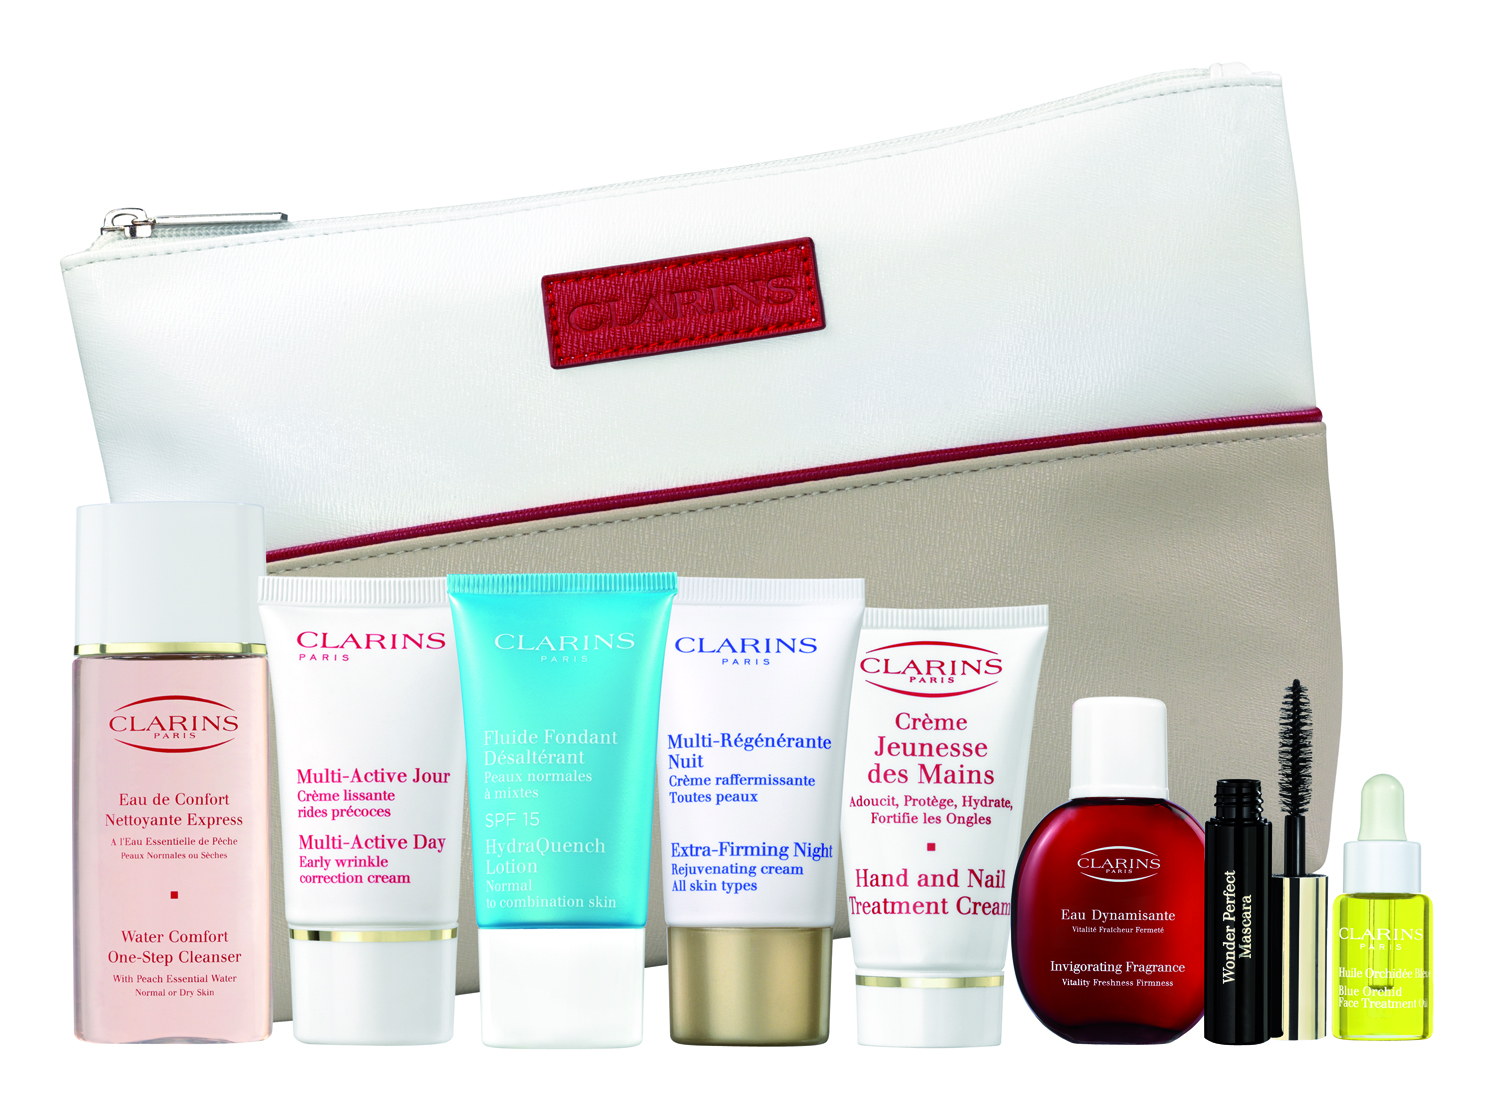 Explore the extensive range of Clarins makeup, fragrance, skincare, body care and ClarinsMen grooming products including the iconic Double Serum, Extra-Firming range and Beauty Flash Balm. Clarins.